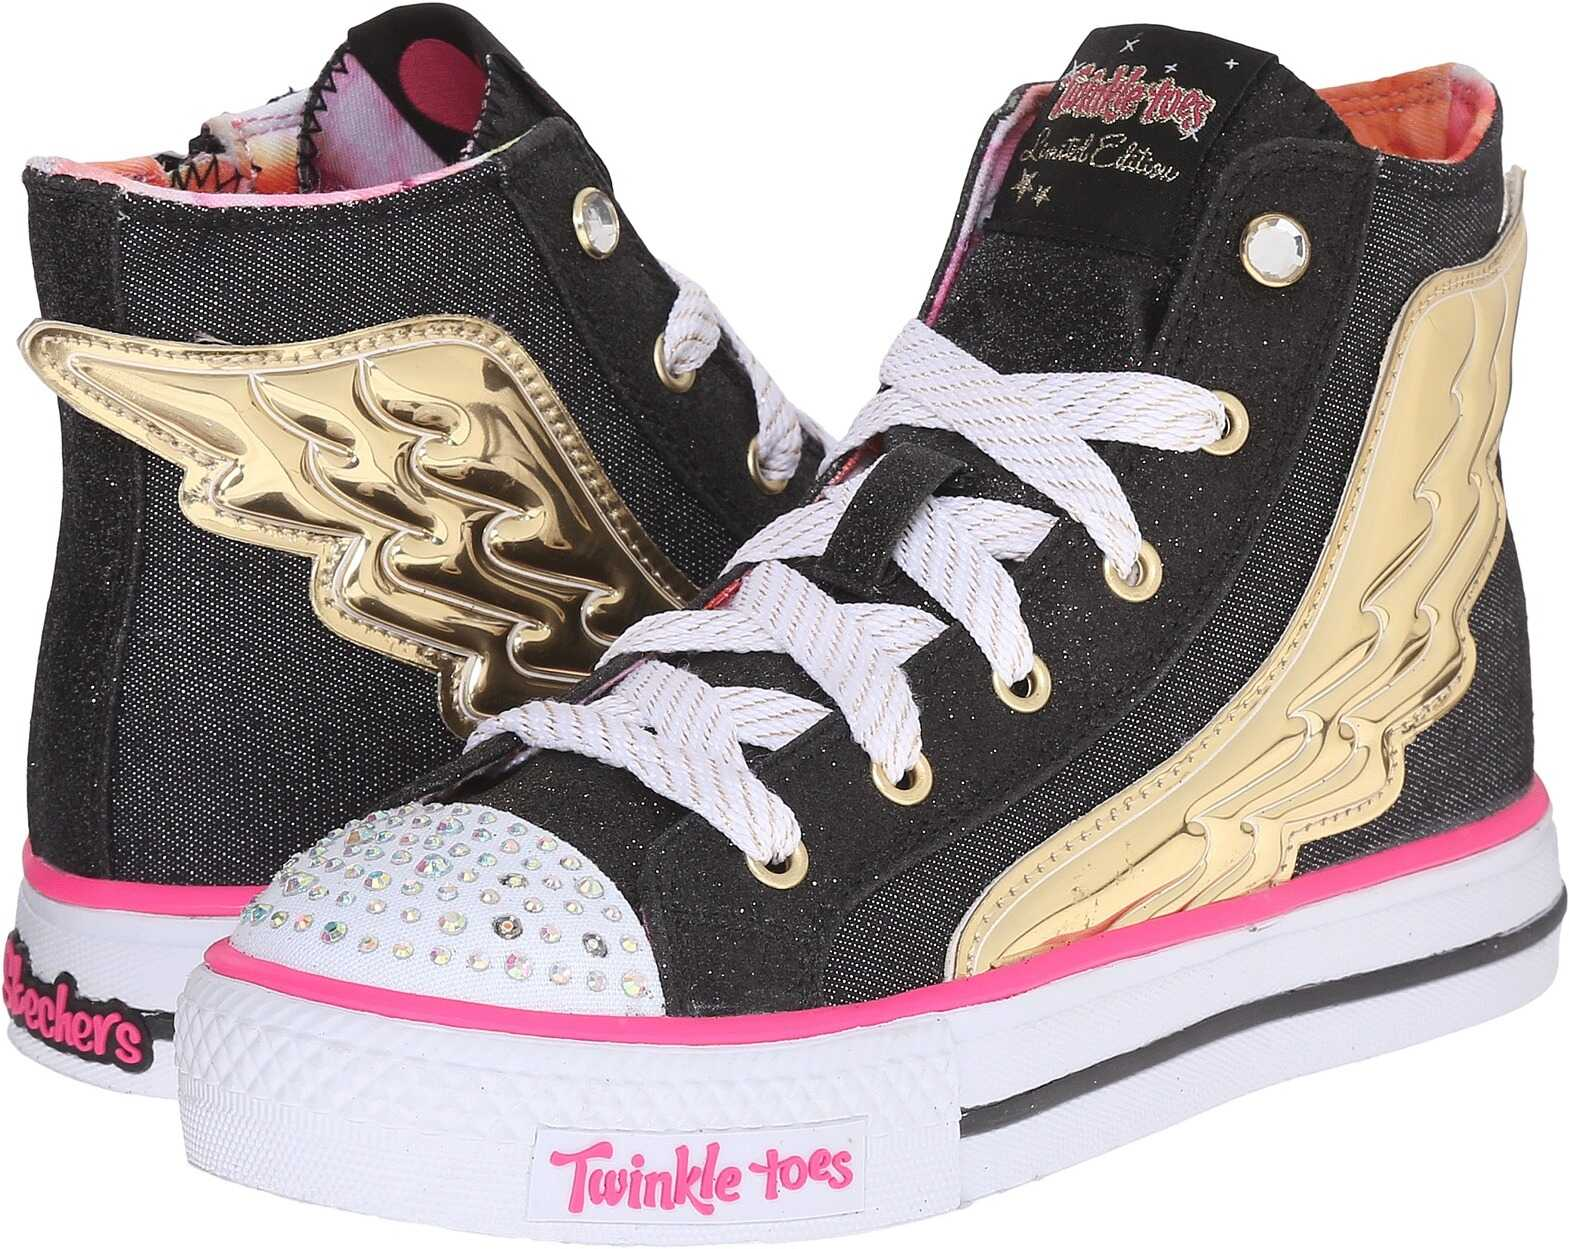 SKECHERS KIDS Twinkle Toes - Flutter Up 10565L (Little Kid/Big Kid) Black/Gold